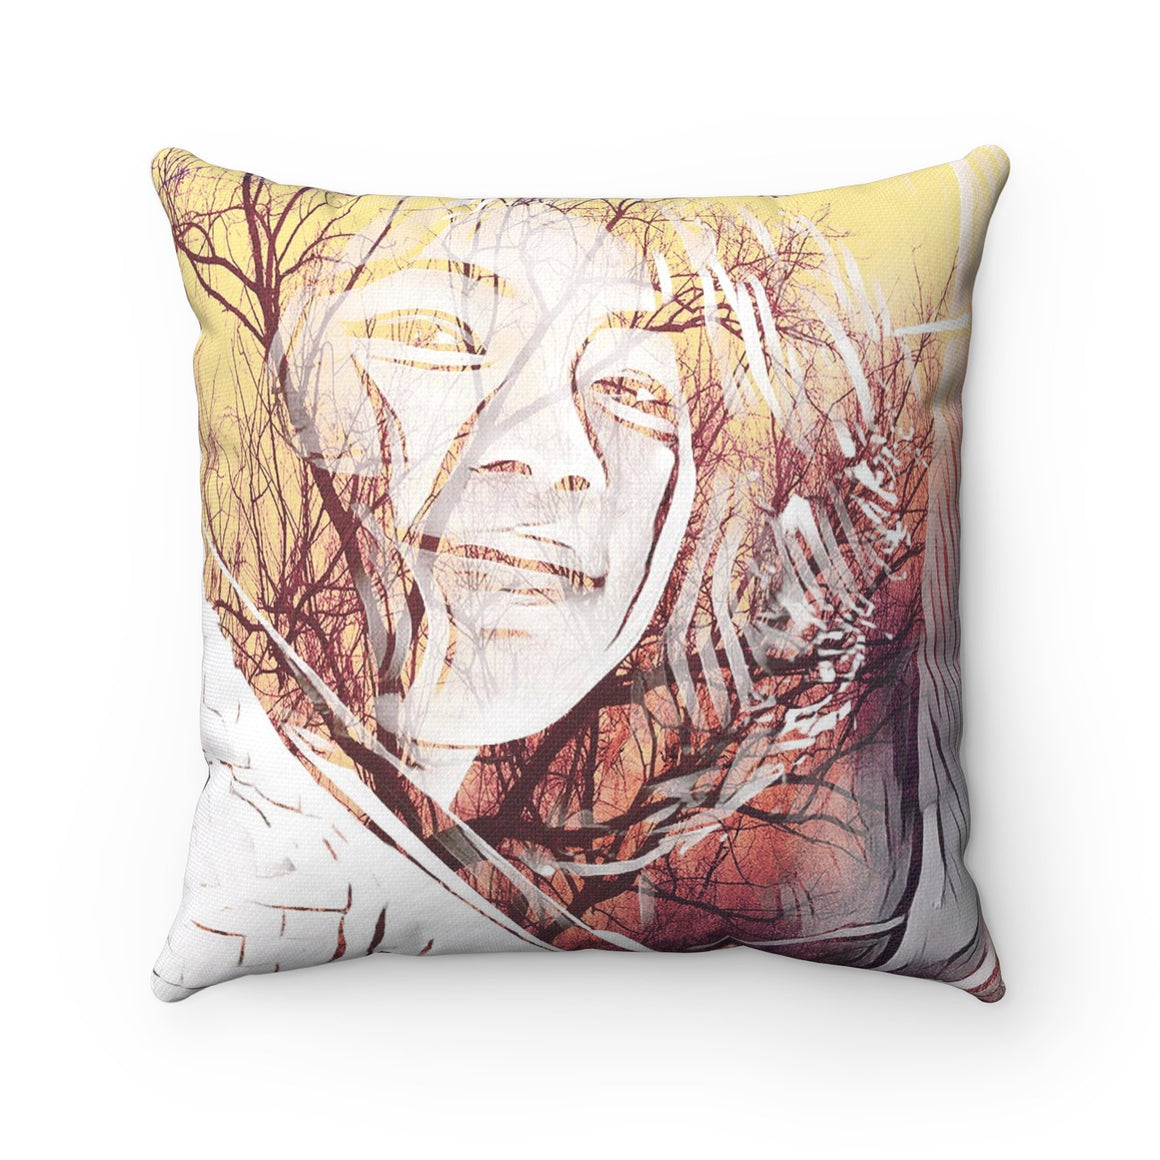 Levi Thang Vintage Face Design S Spun Polyester Square Pillow Case